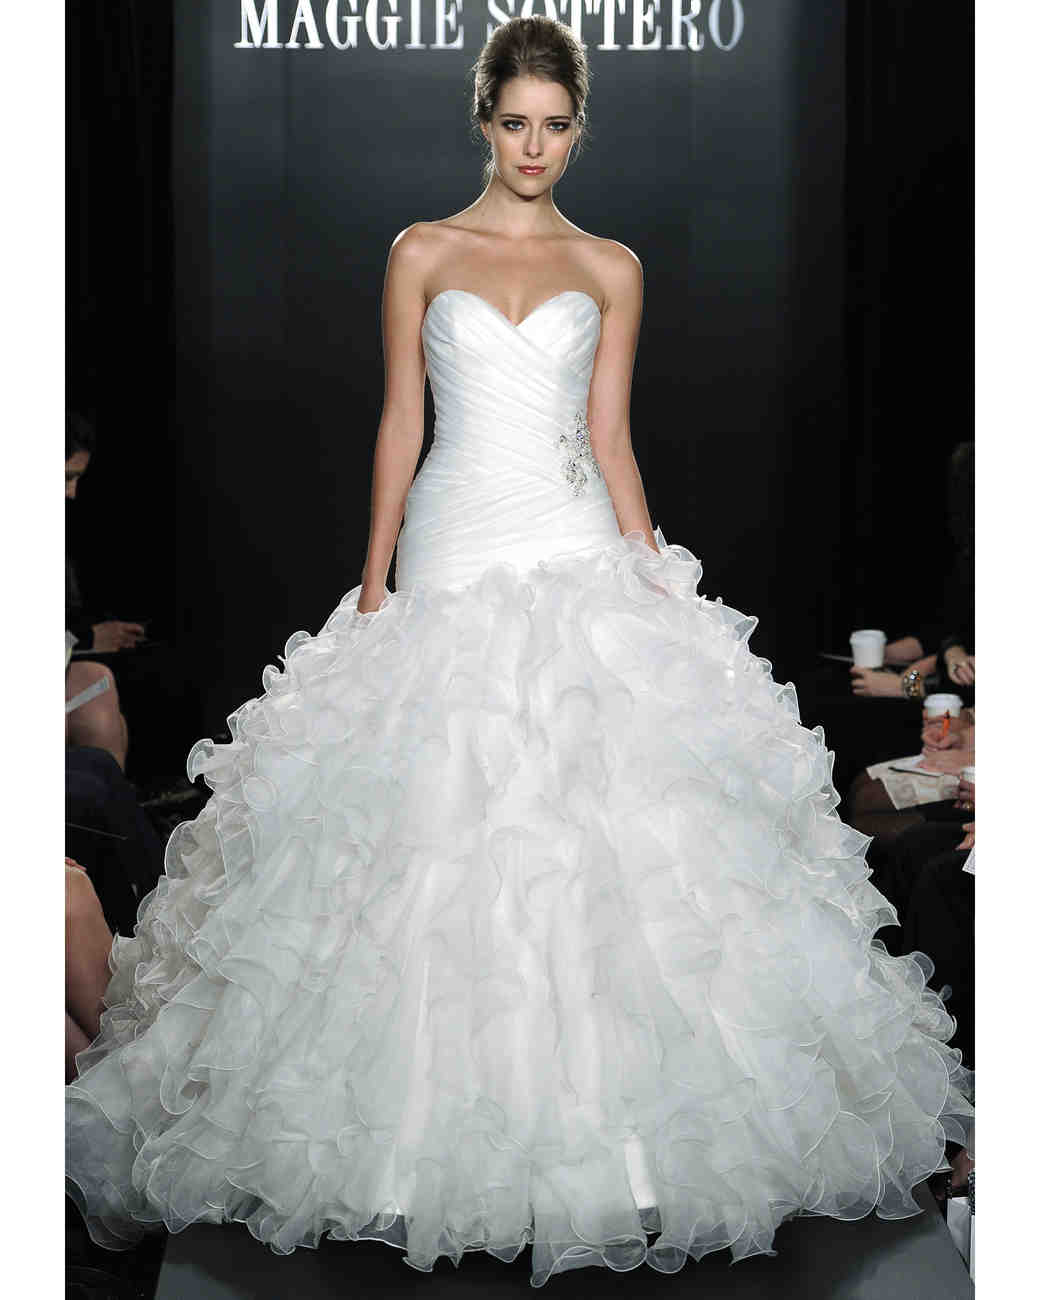 maggie-sottero-fall2012-wd108109_013.jpg